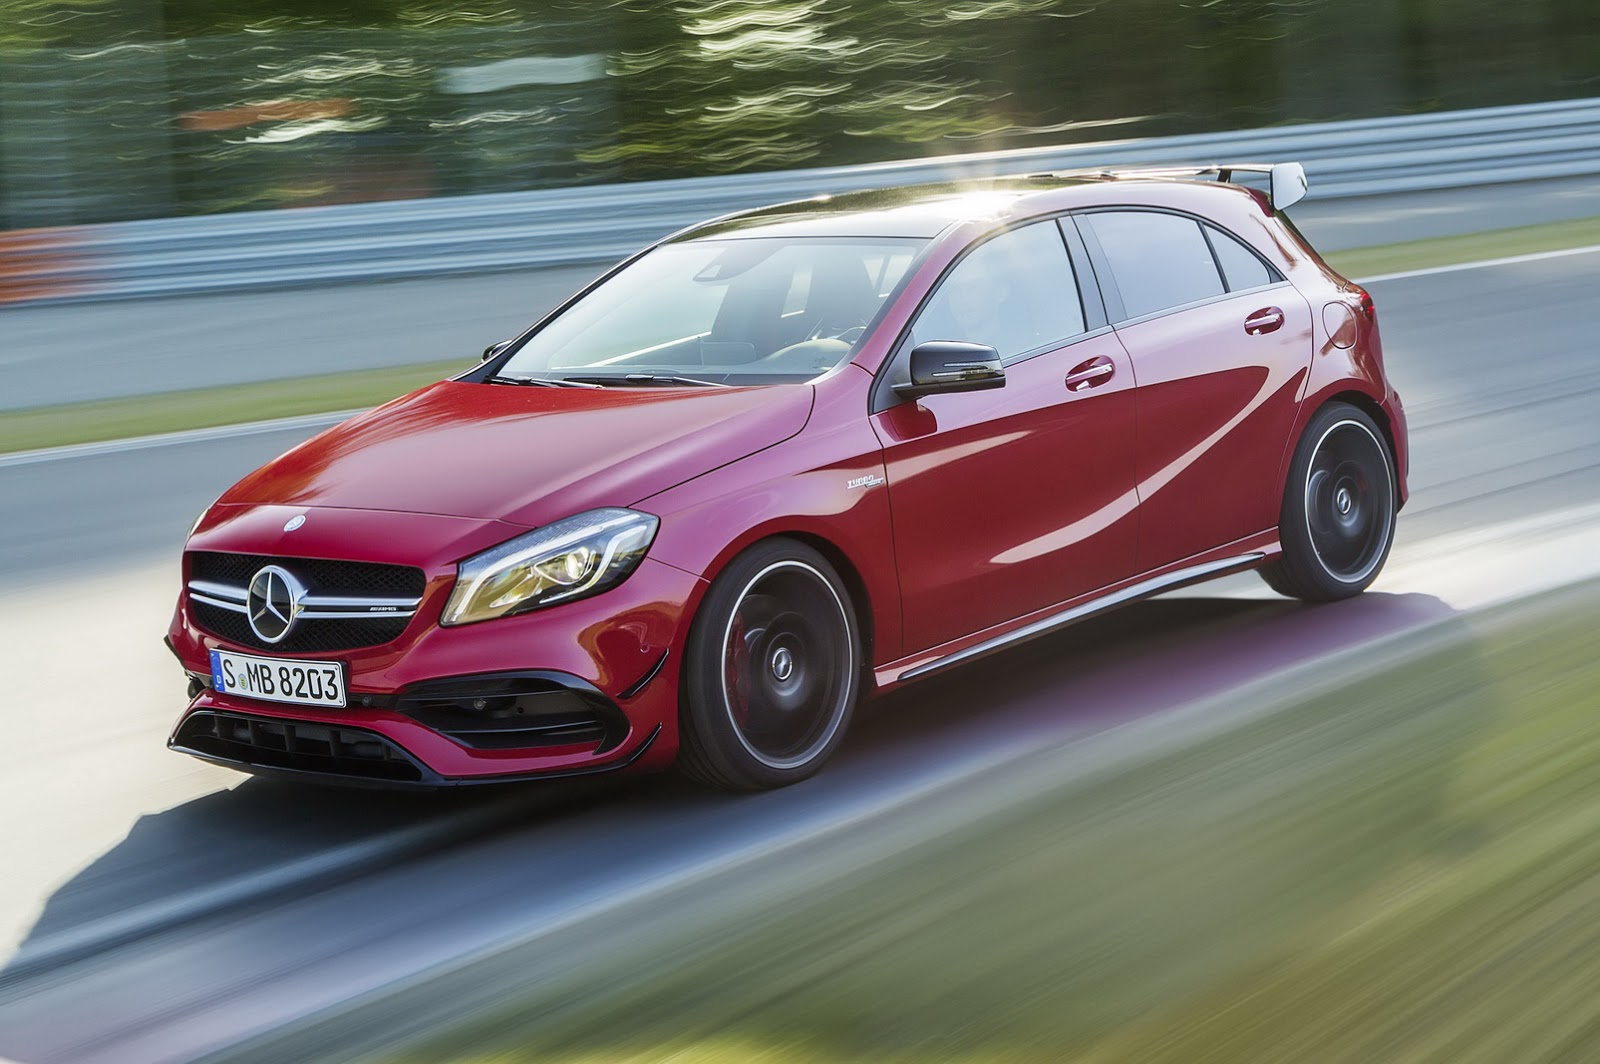 2016 Mercedes Benz A Class Priced From 23 746 In Germany Carscoops